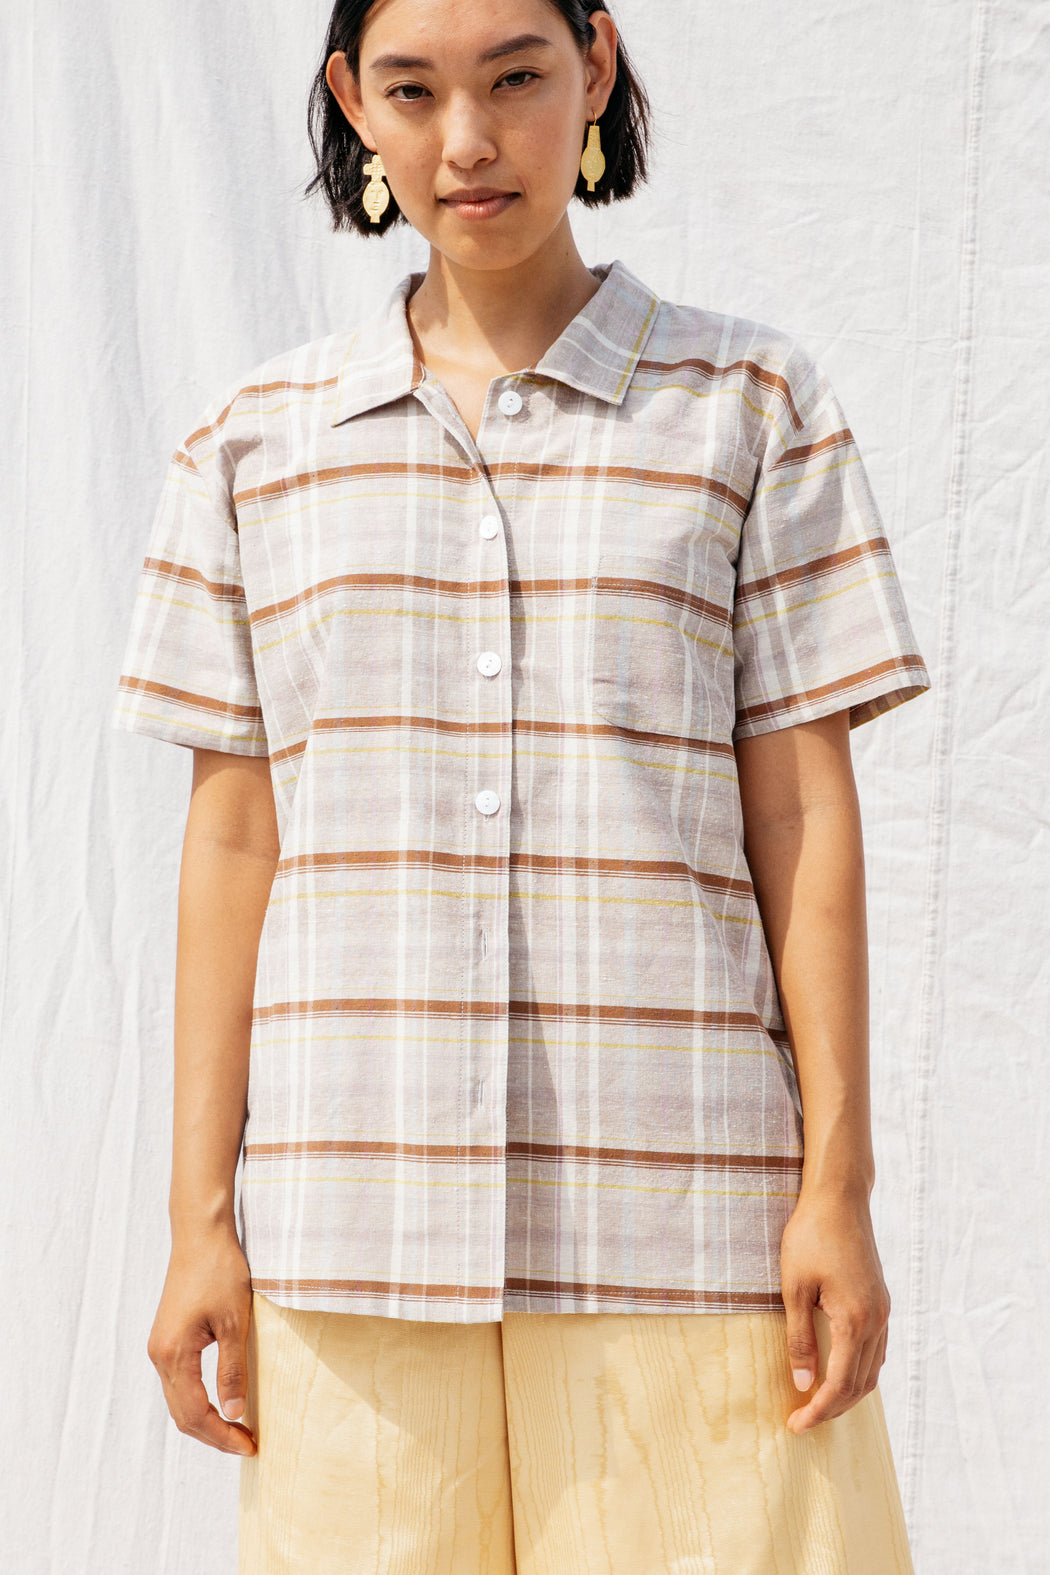 DYLAN SHIRT, KHAKI PLAID SILK